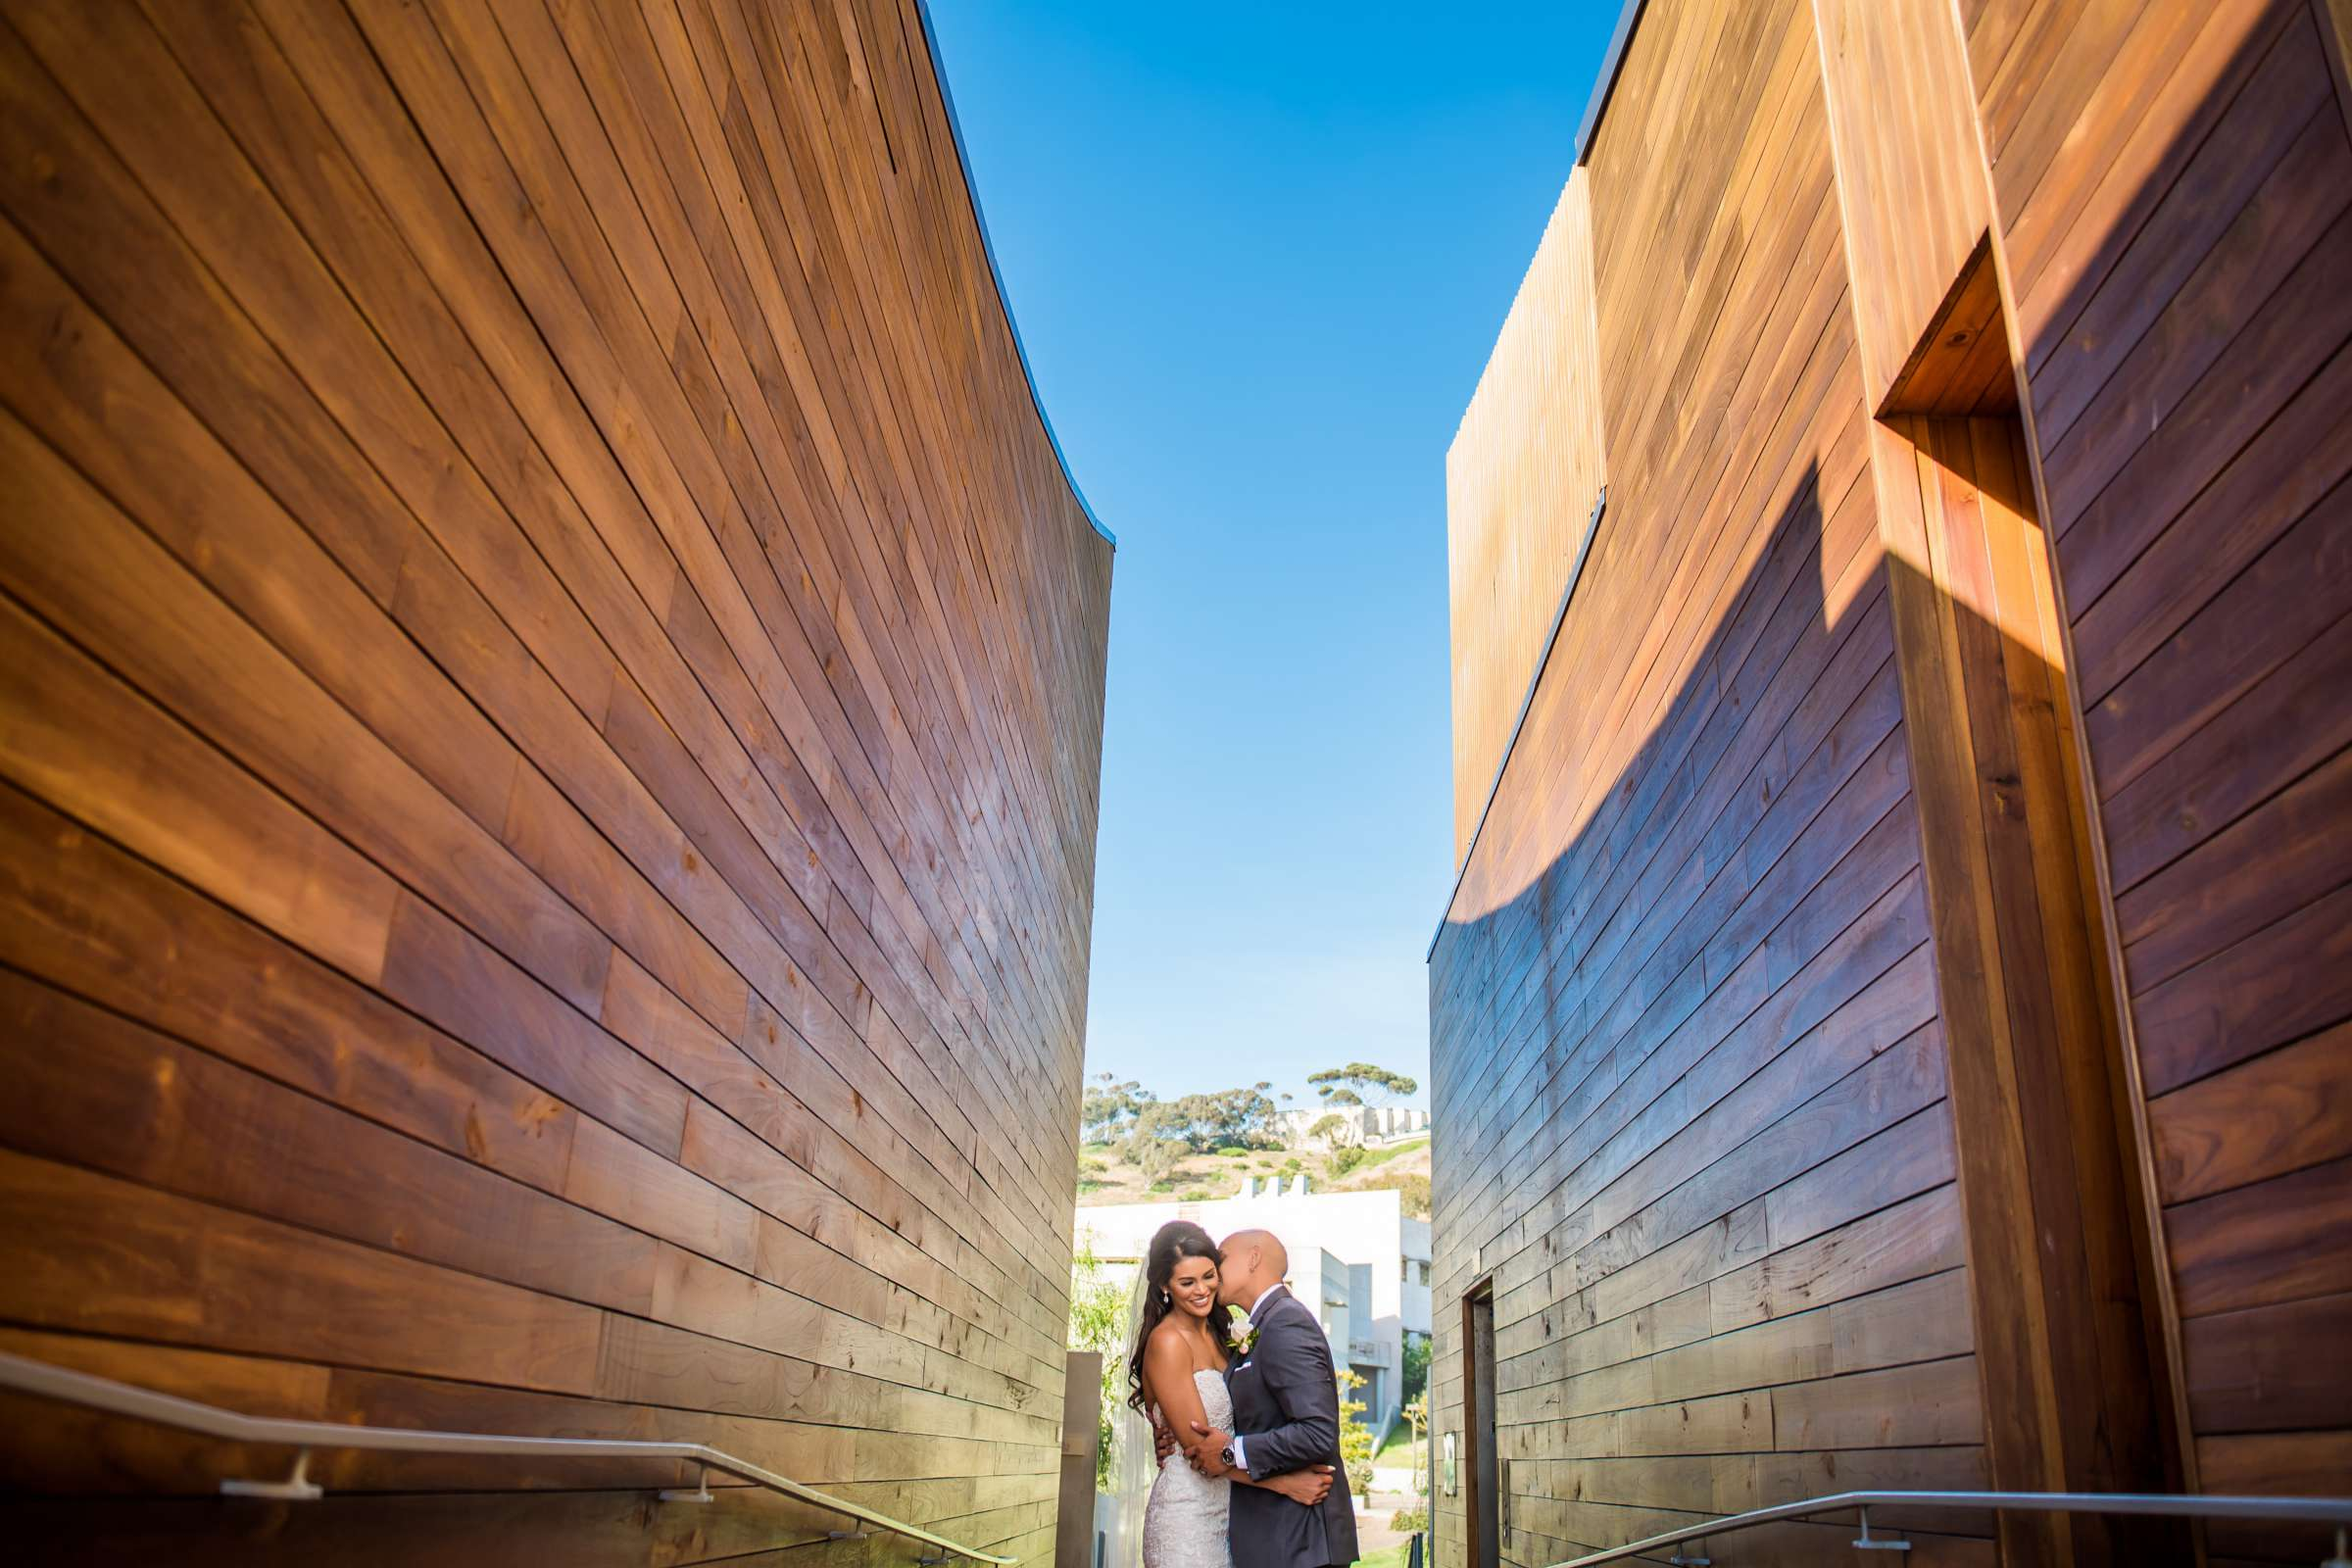 Scripps Seaside Forum Wedding coordinated by Lavish Weddings, Cindy and Justin Wedding Photo #381774 by True Photography